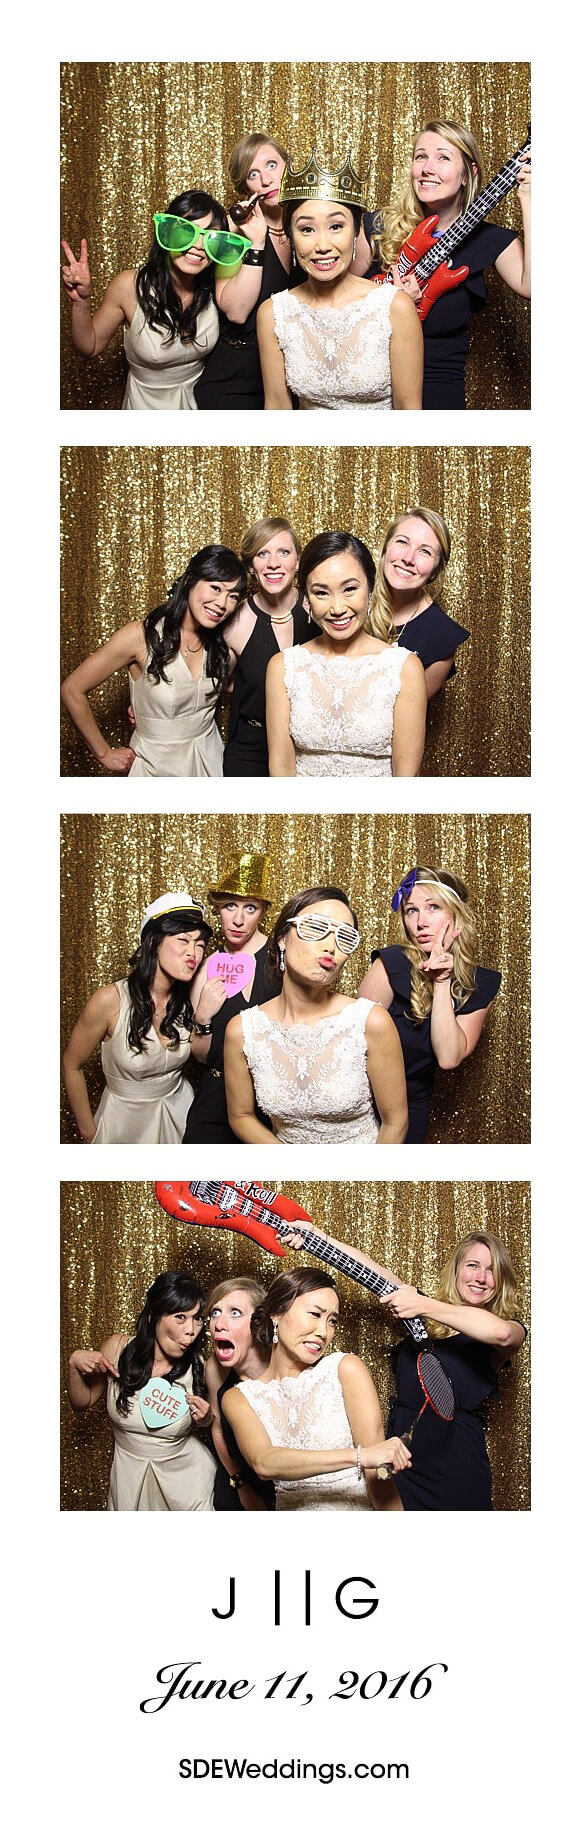 Toronto Four Seasons Hotel Wedding Photo Booth Rental 10